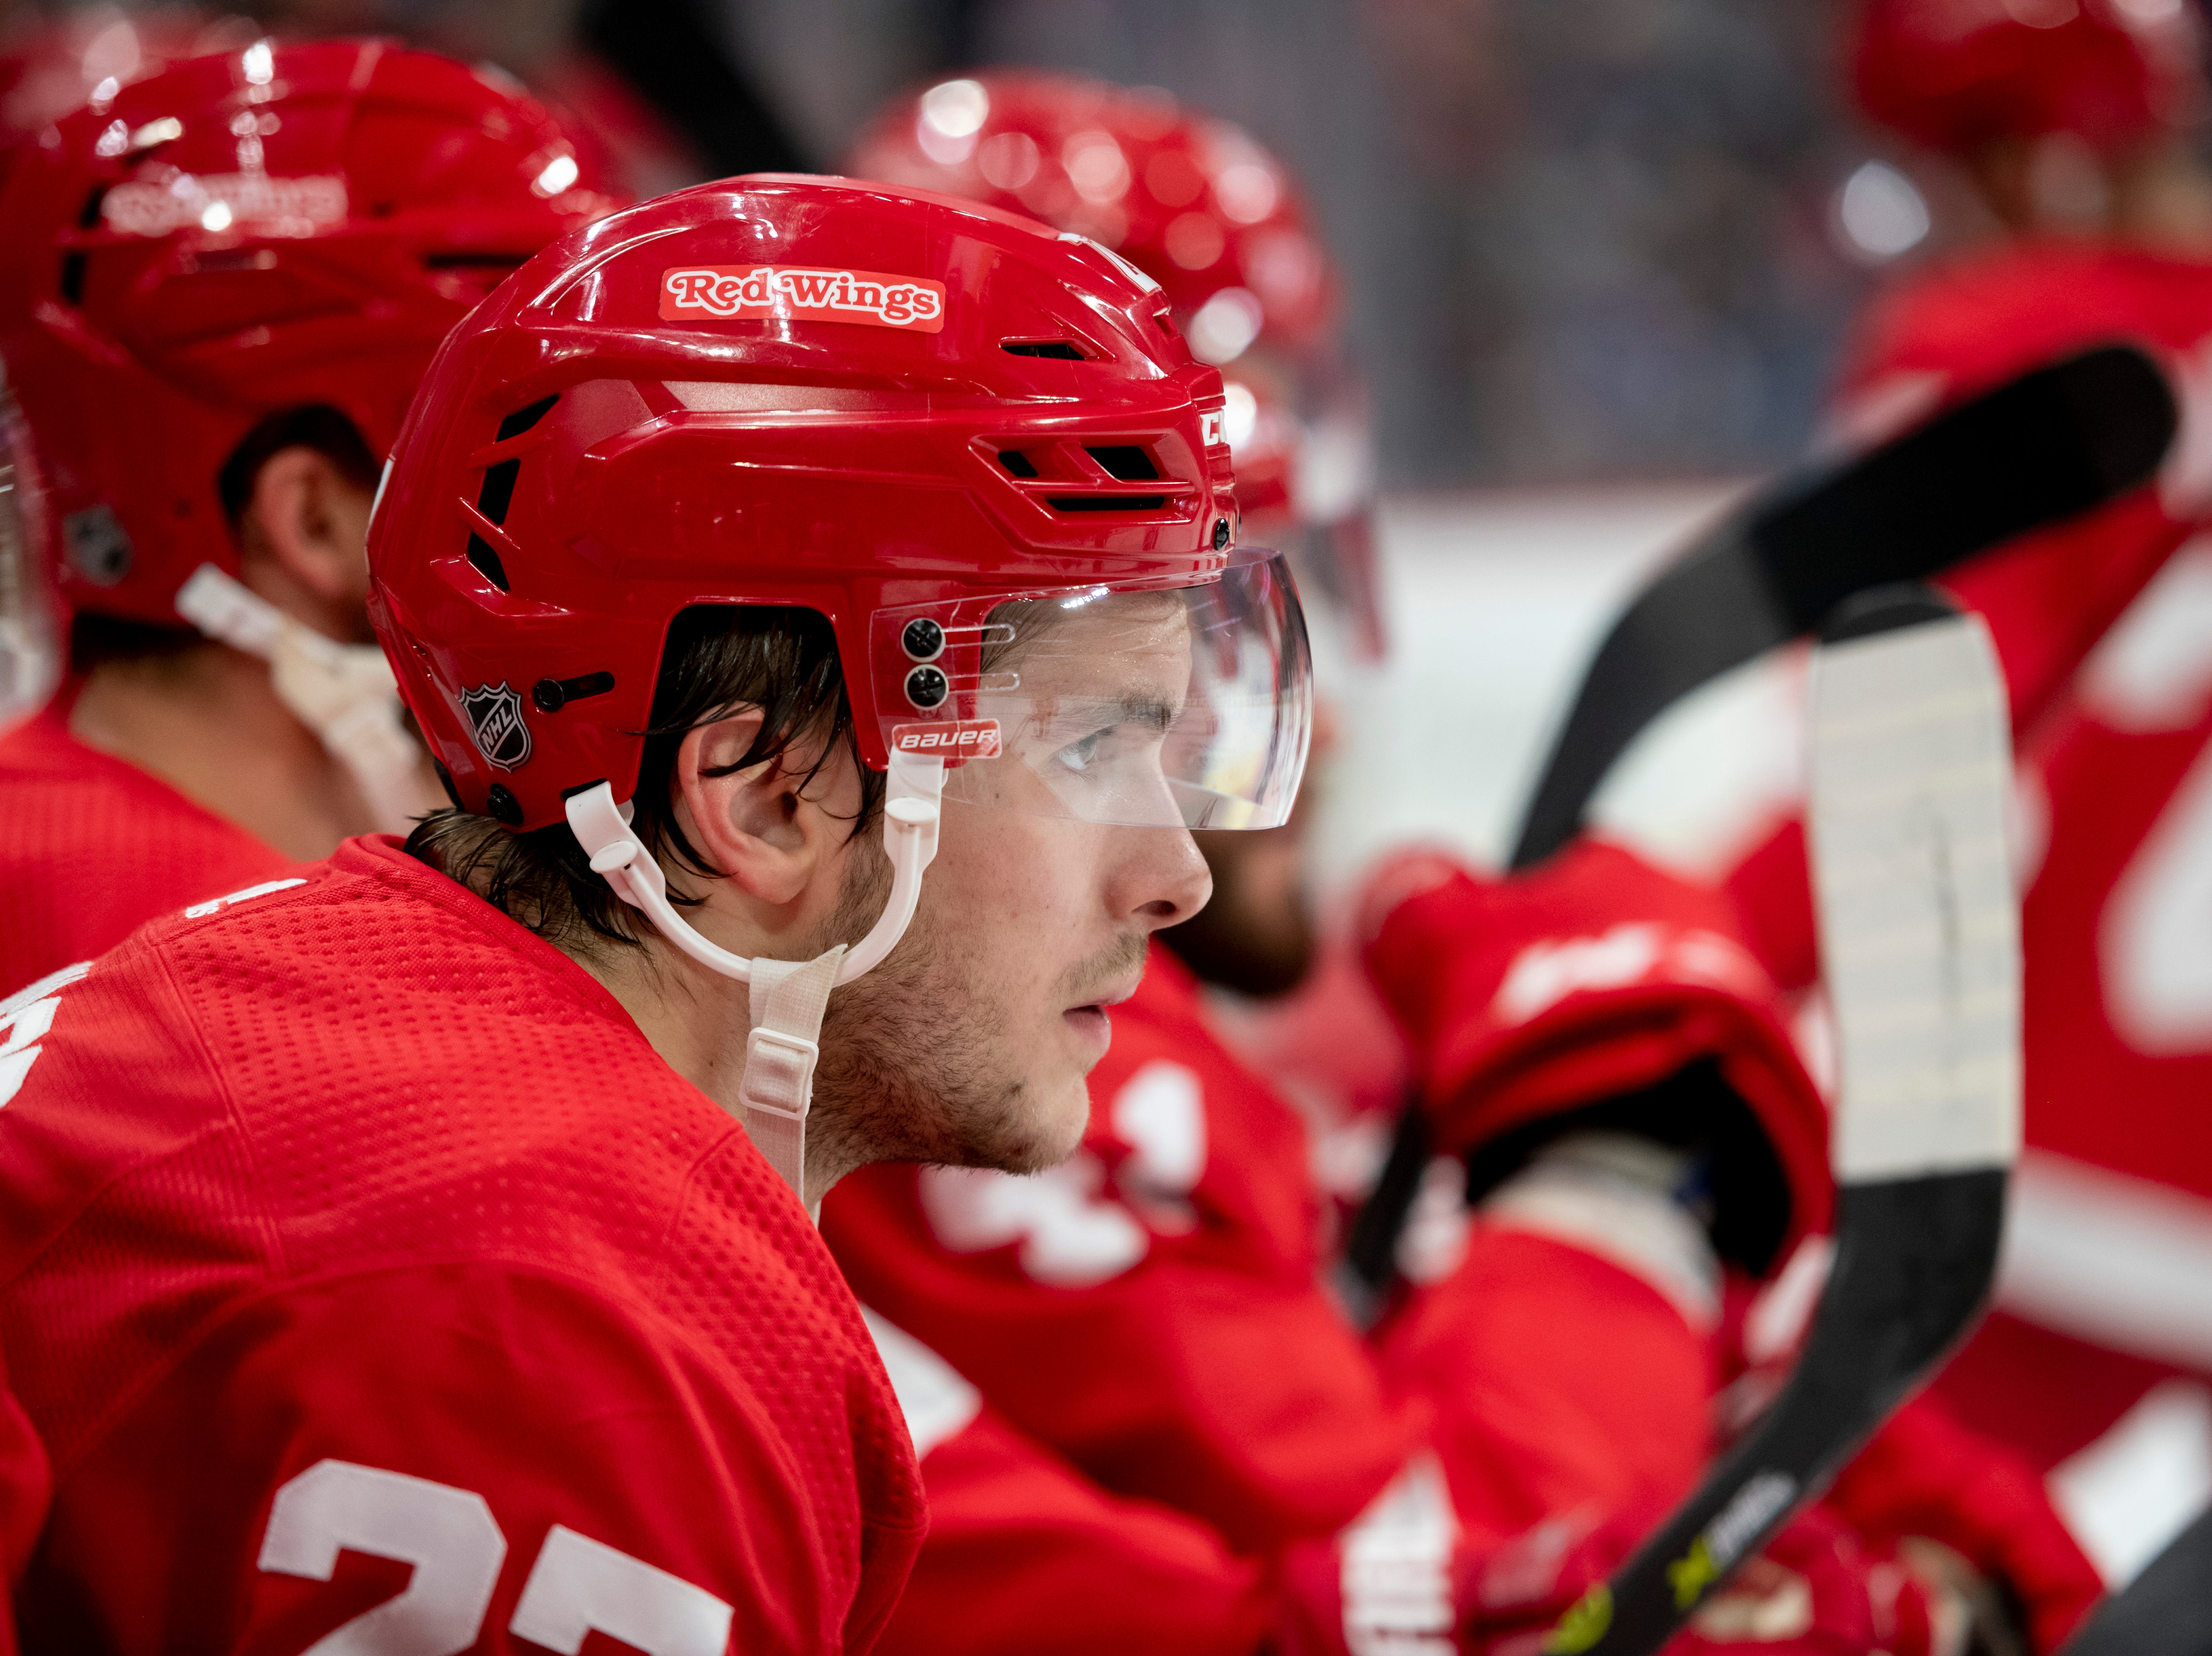 Detroit center Michael Rasmussen            Photos are of the Detroit Red Wings vs. the Toronto Maple Leafs, at Little Caesars Arena, in Detroit, October 11, 2018.  (David Guralnick / The Detroit News)